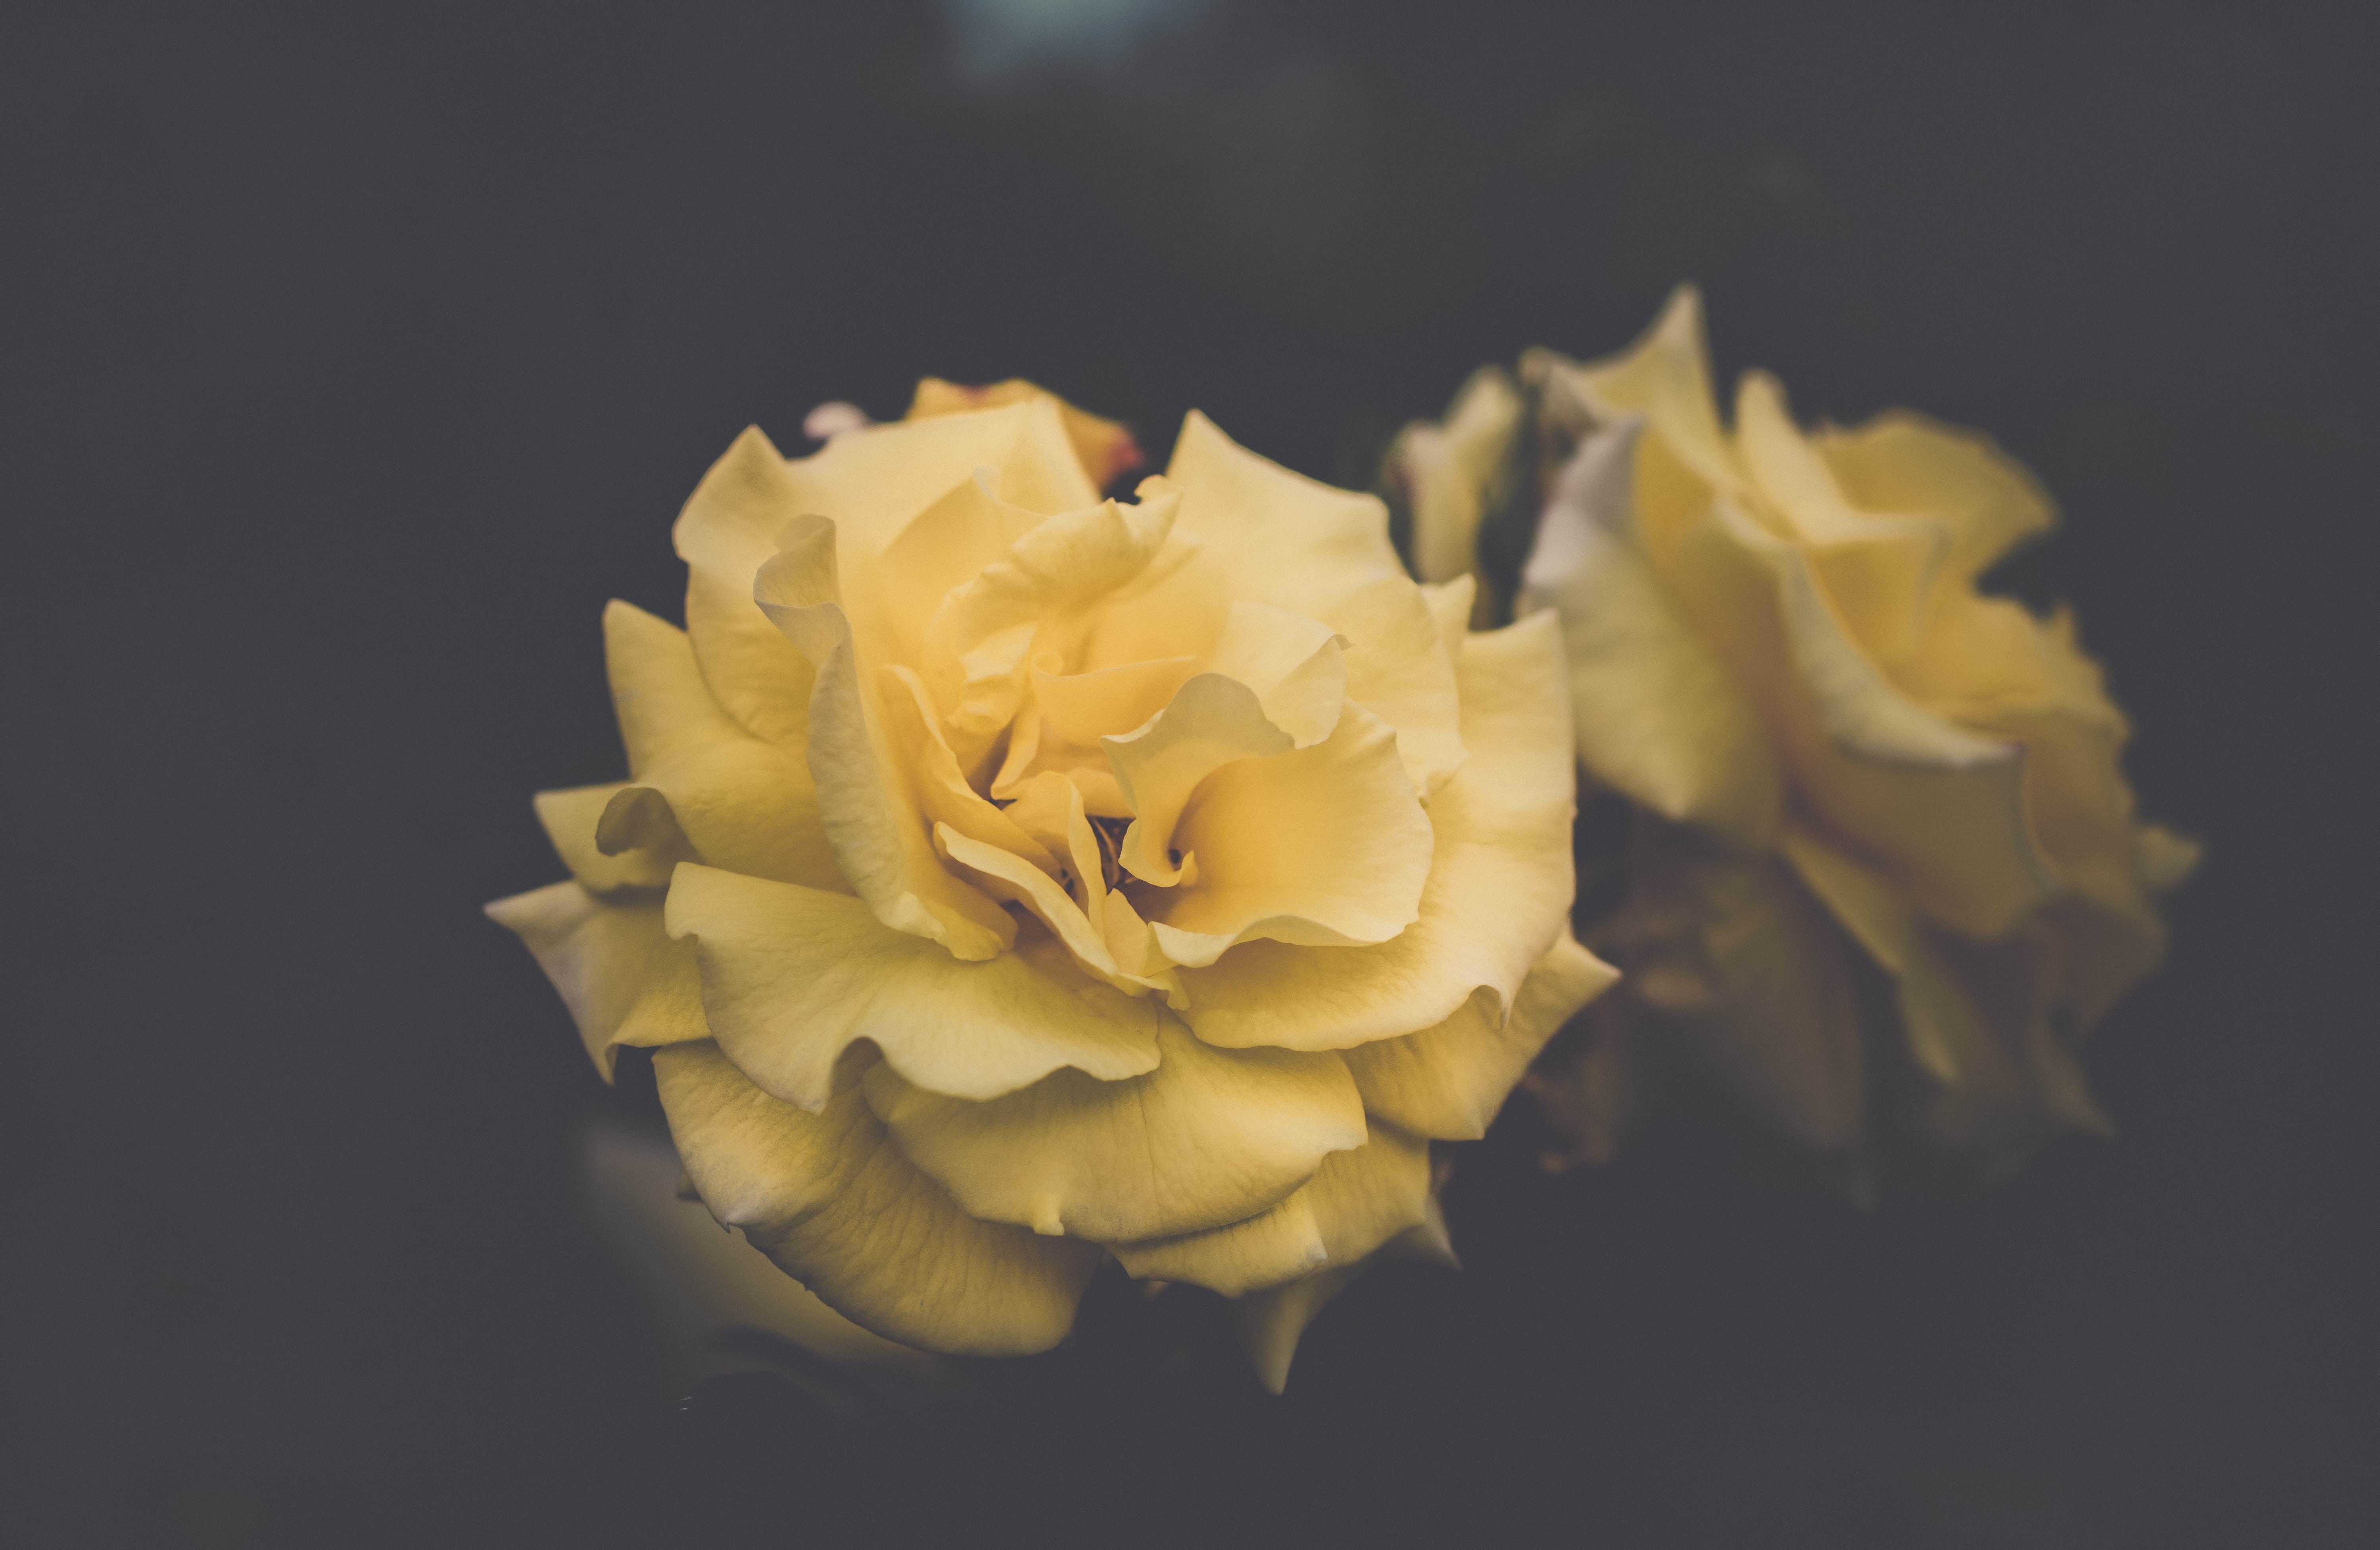 Yellow rose-like flowers with delicate petals against a dark background